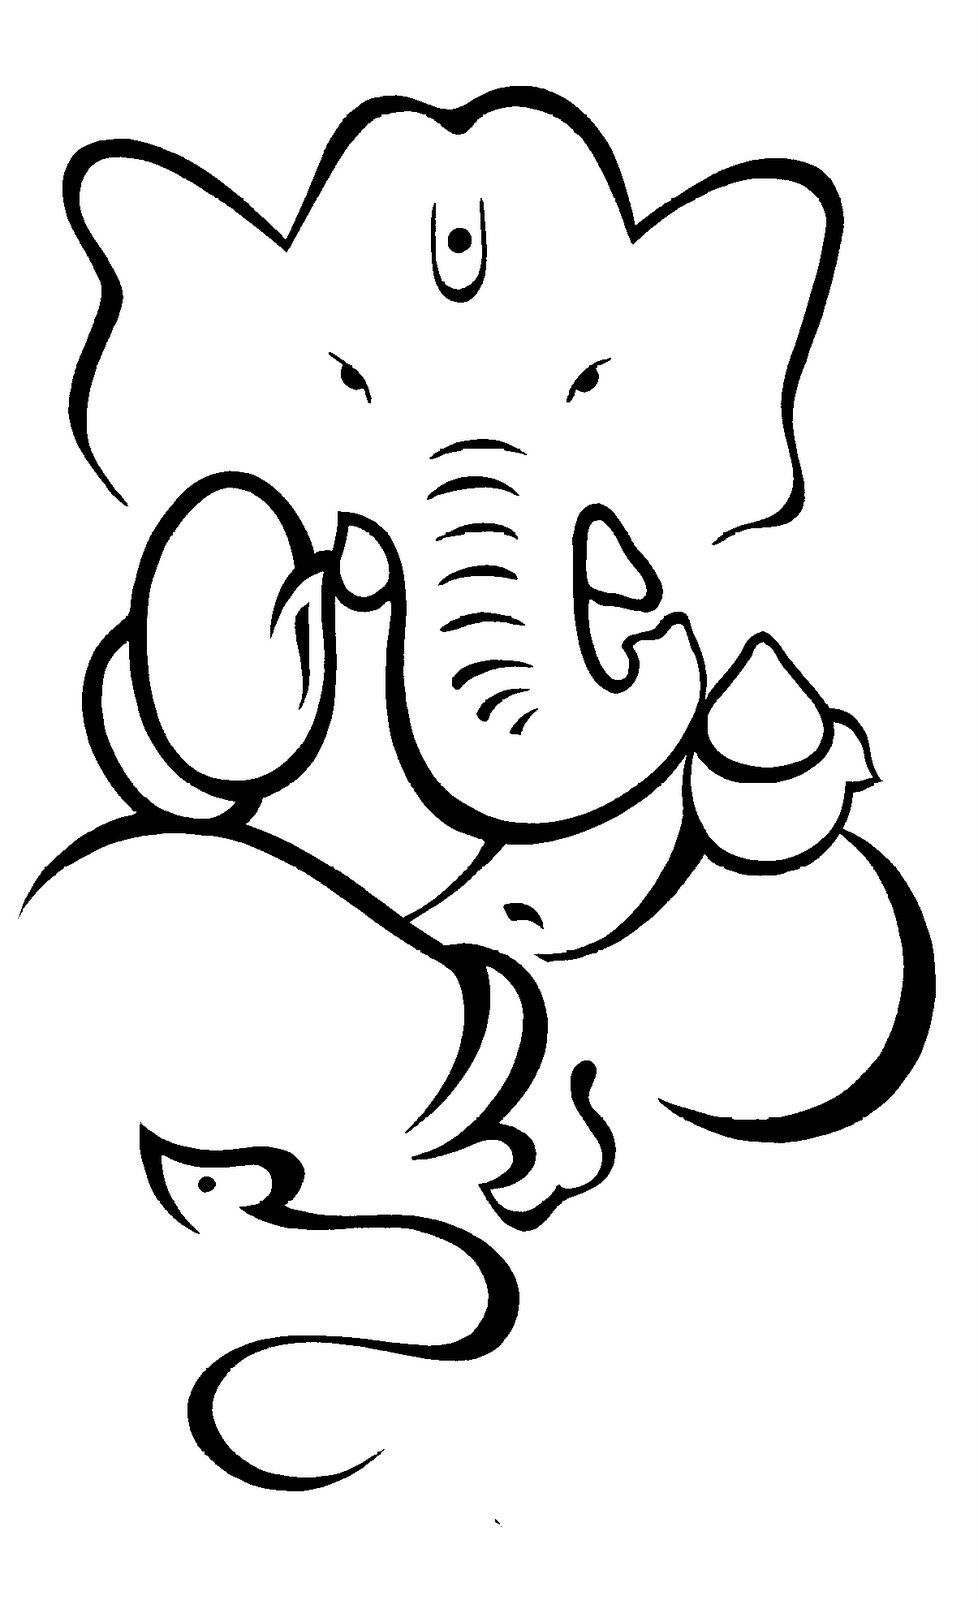 Ganesh sketch easy drawing of lord ganesha how to draw lord ganesha youtube drawing